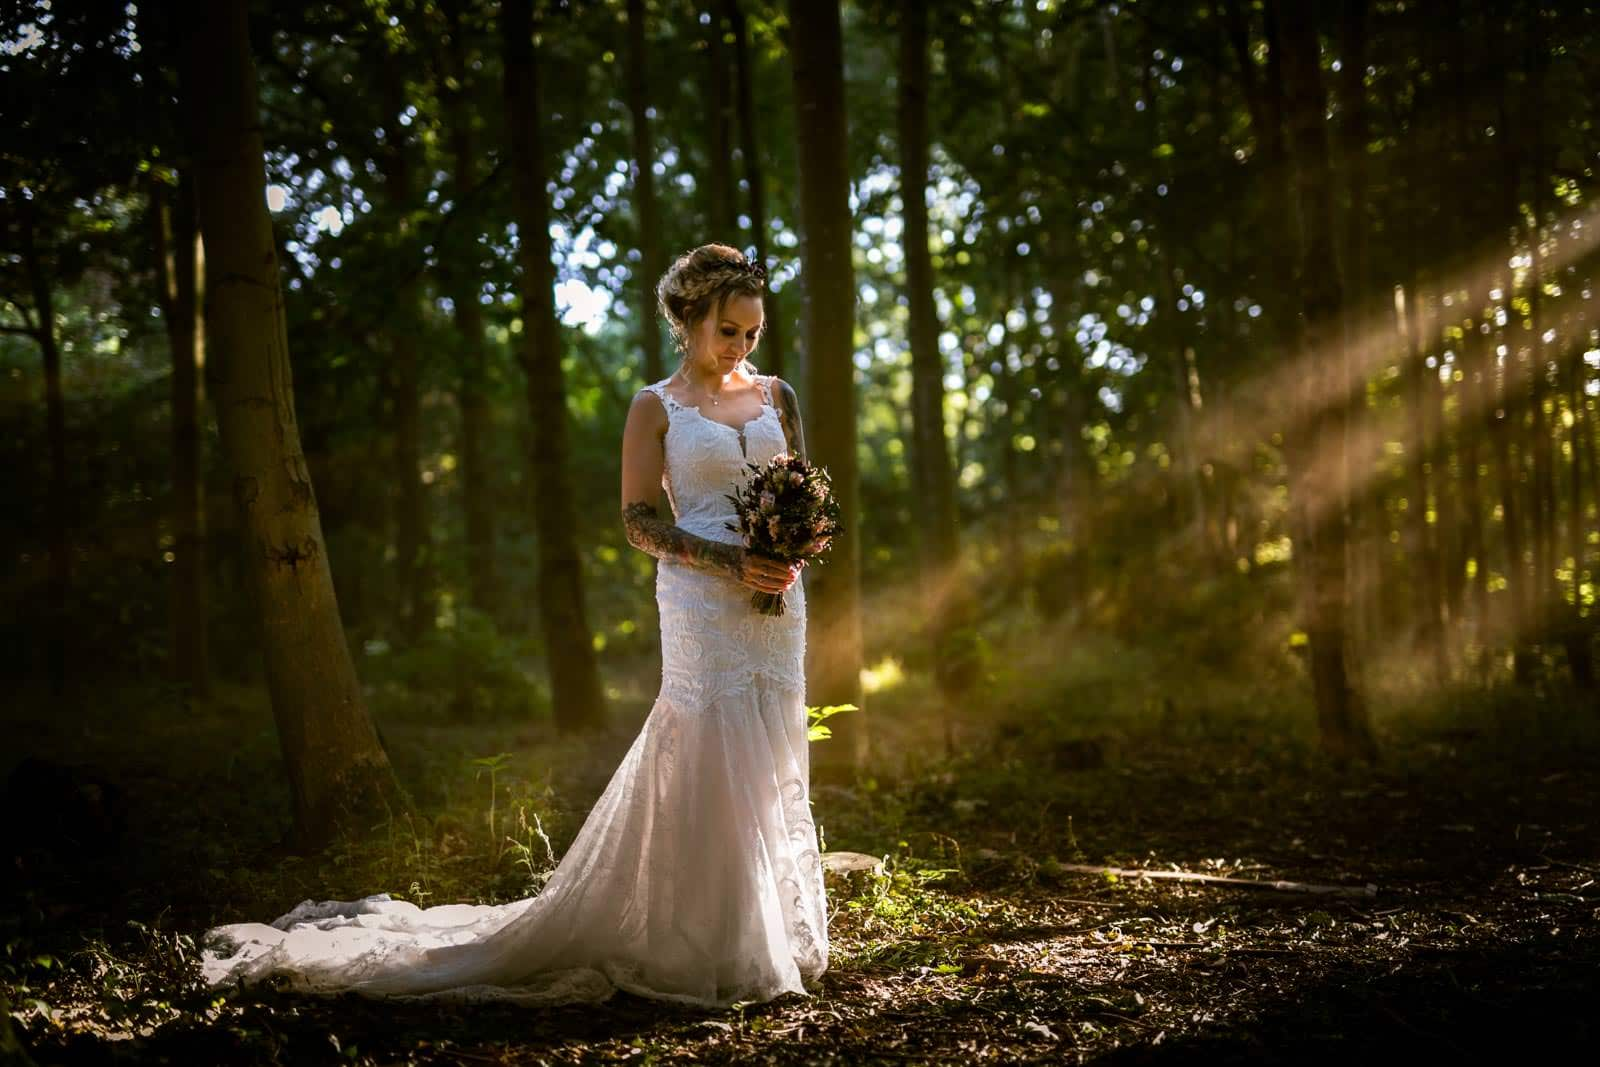 Beautiful photo taken at hunsbury hill center in Northampton. Bride standing in the forest being lit by sun beams